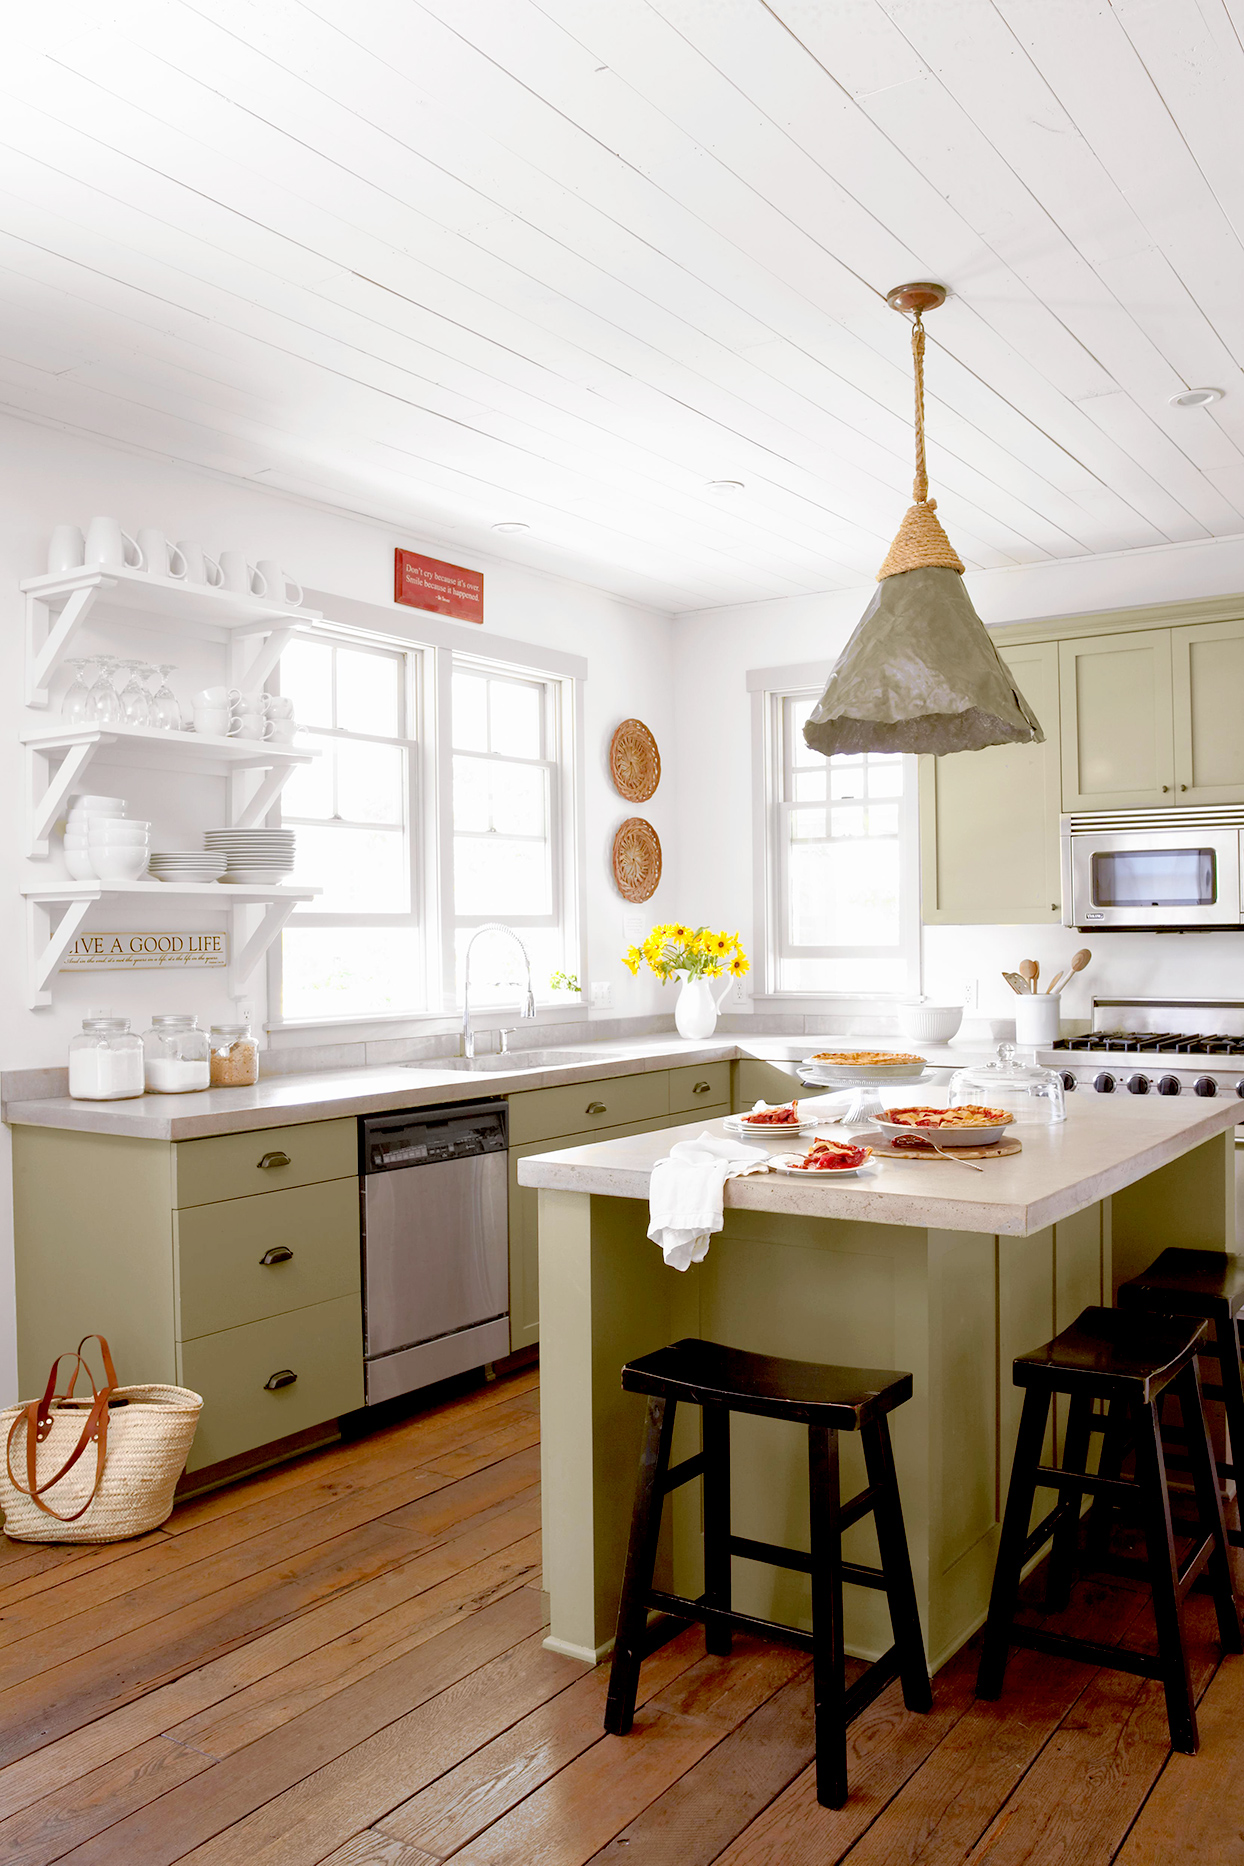 Sage kitchen with island with stools